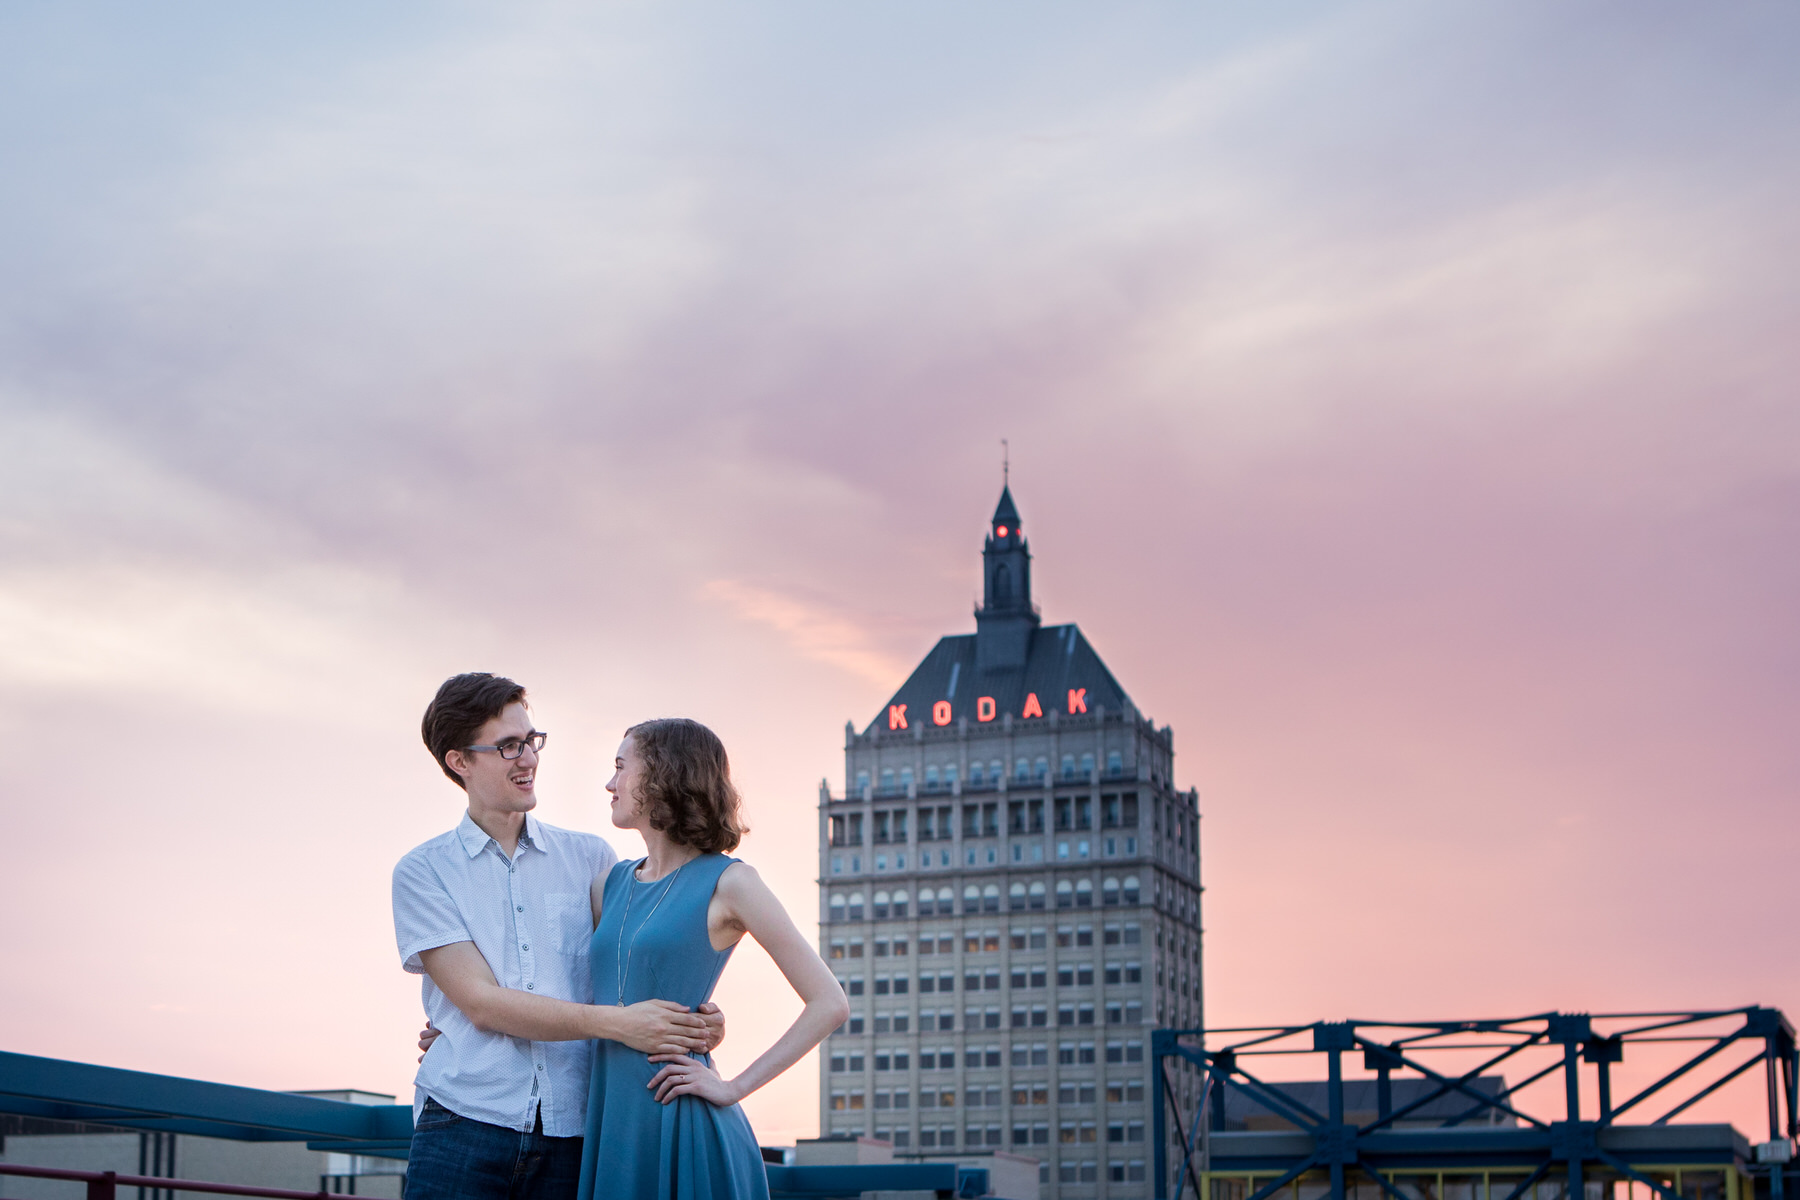 Couple at Sunset with Kodak Building